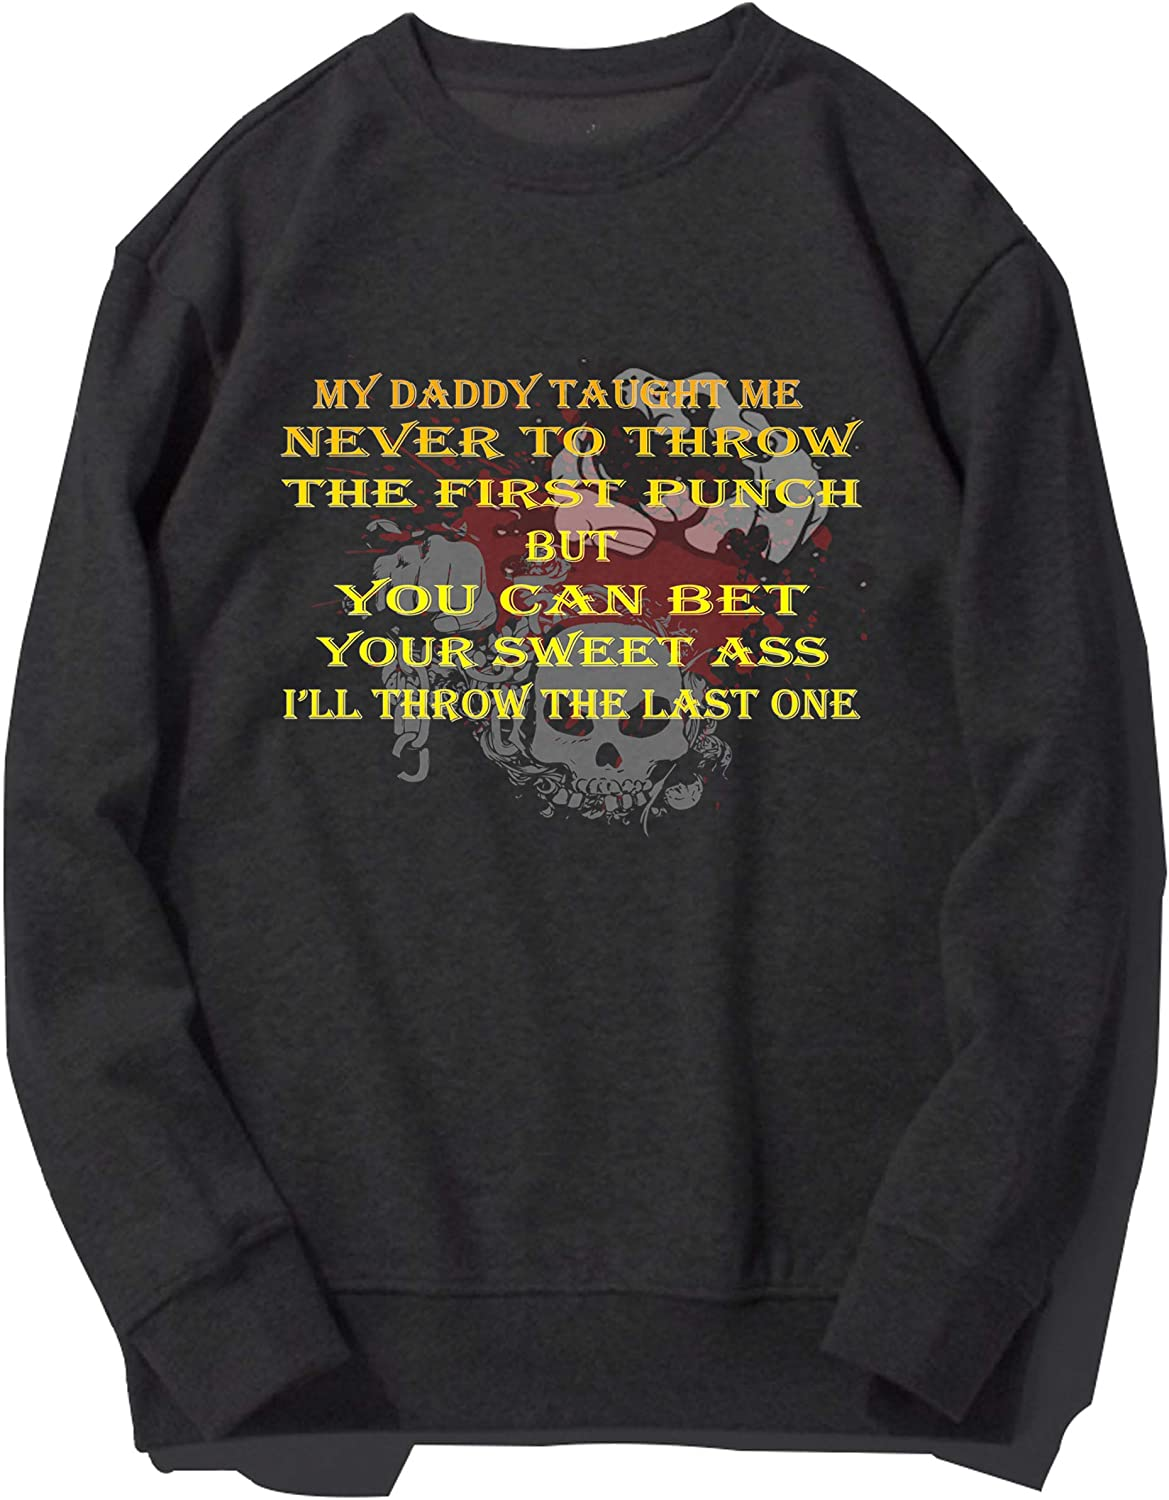 My Daddy Taught-Me Never to Throw The First Punchs Funny Saying Sarcastic Graphic Sweatshirt Shirts